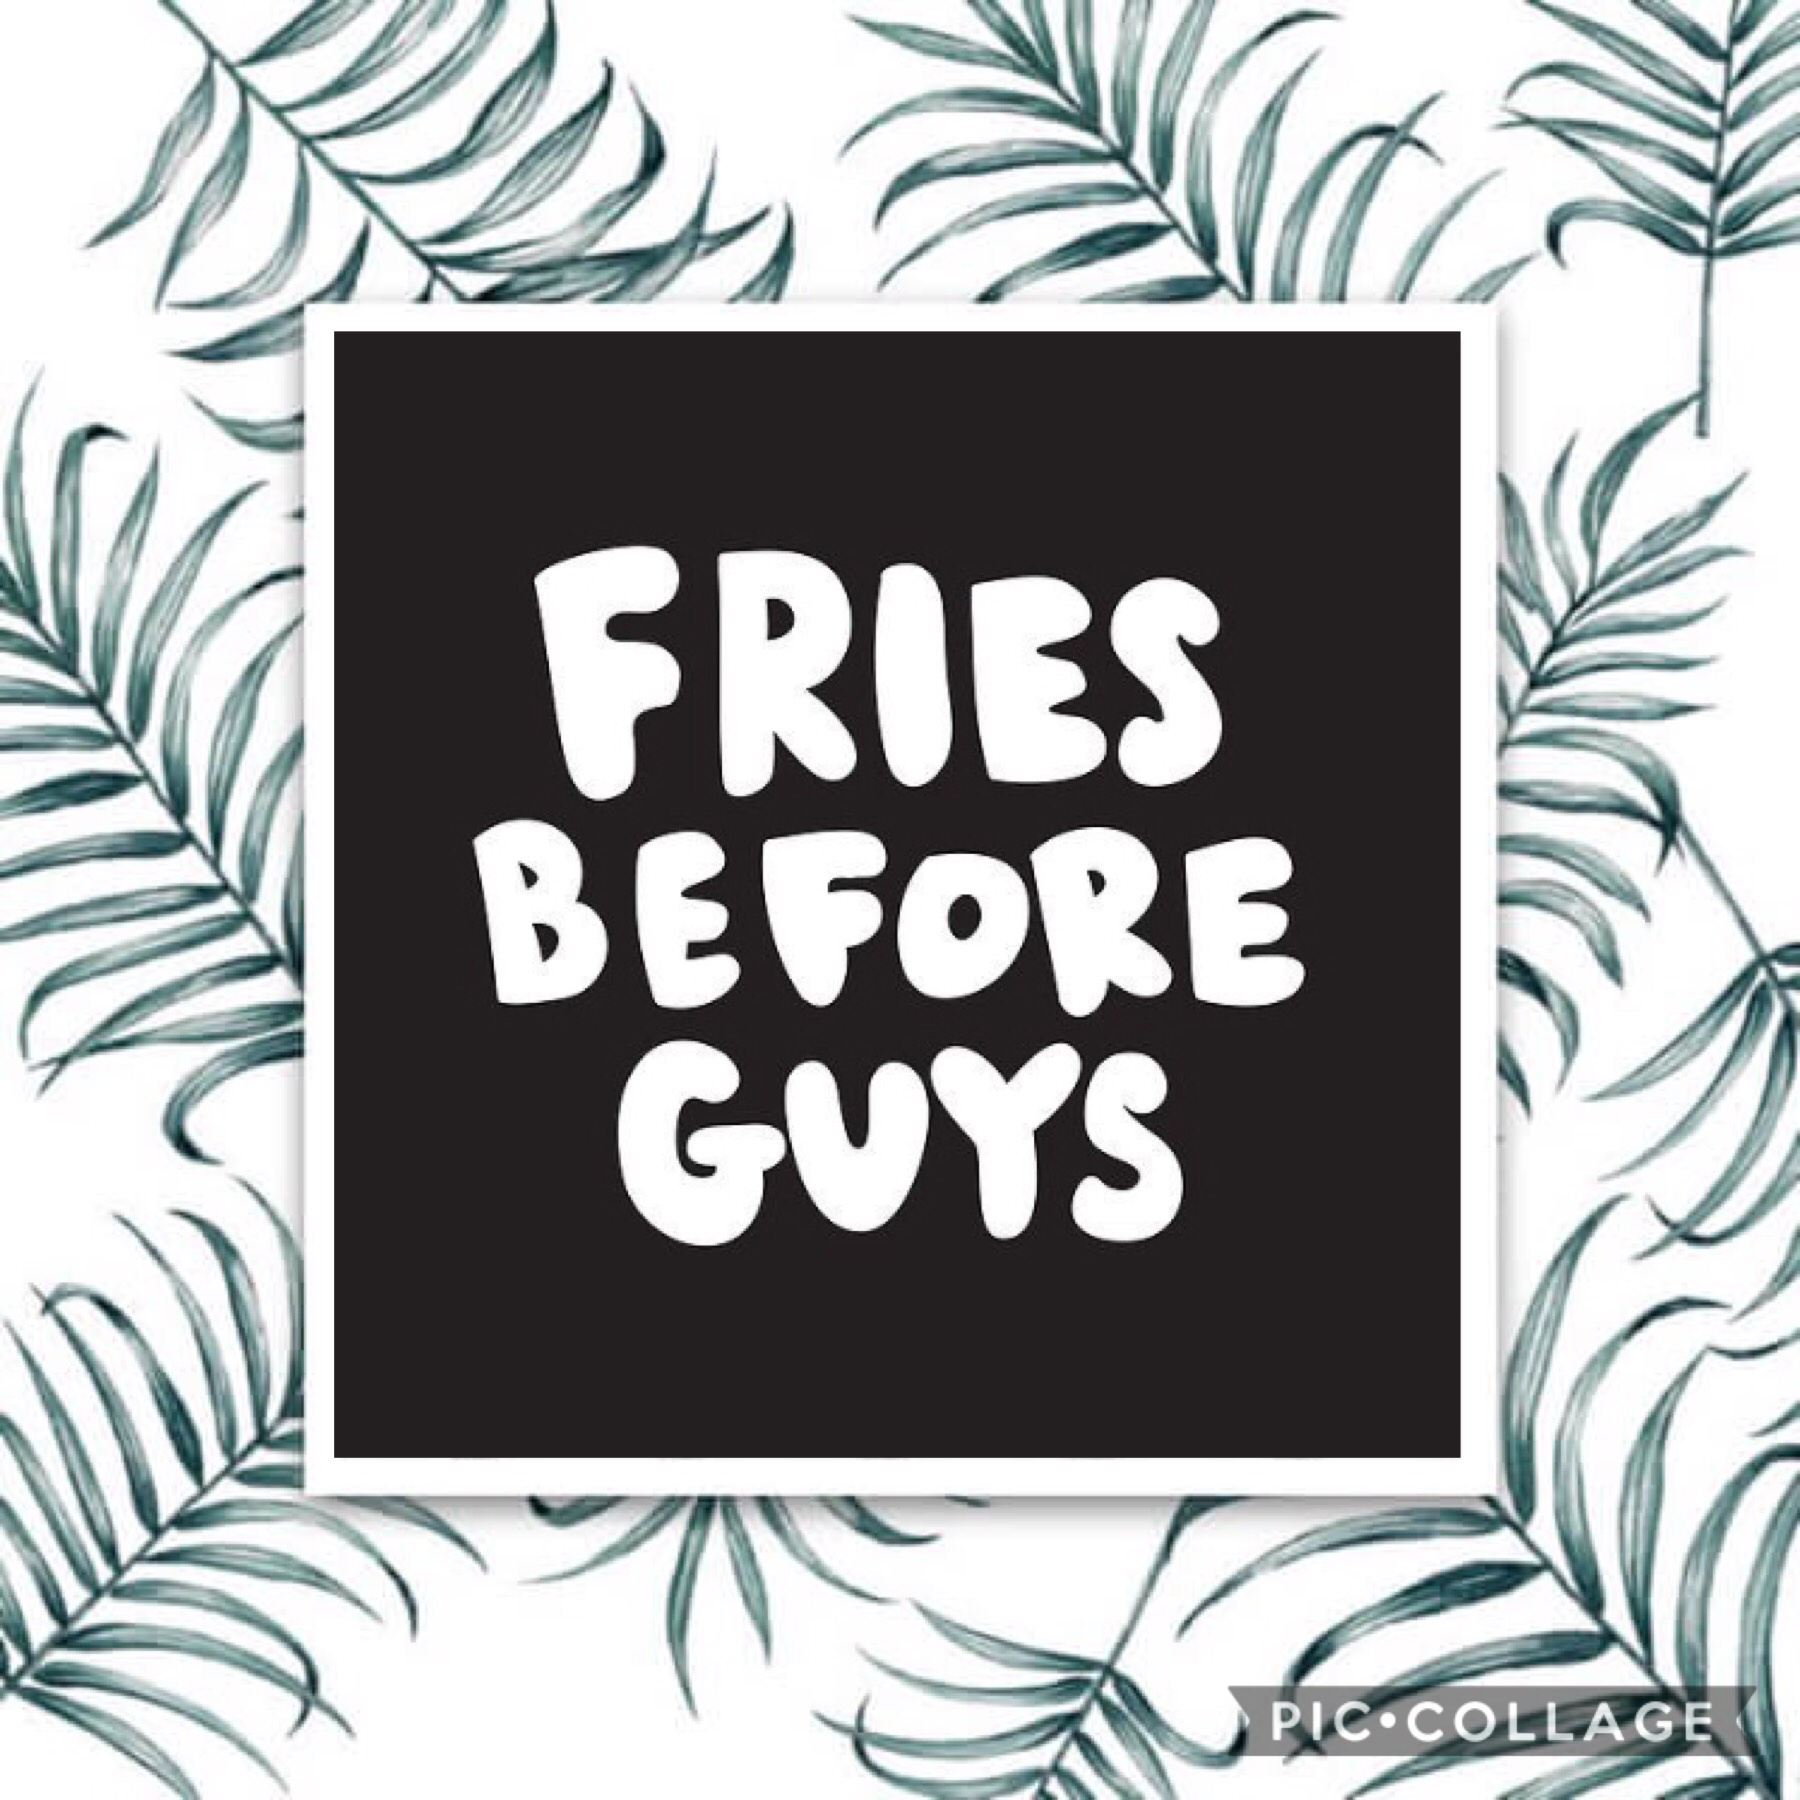 Sorry to all the guys out there but no! Fries before guys!!😍😍😋😋😬